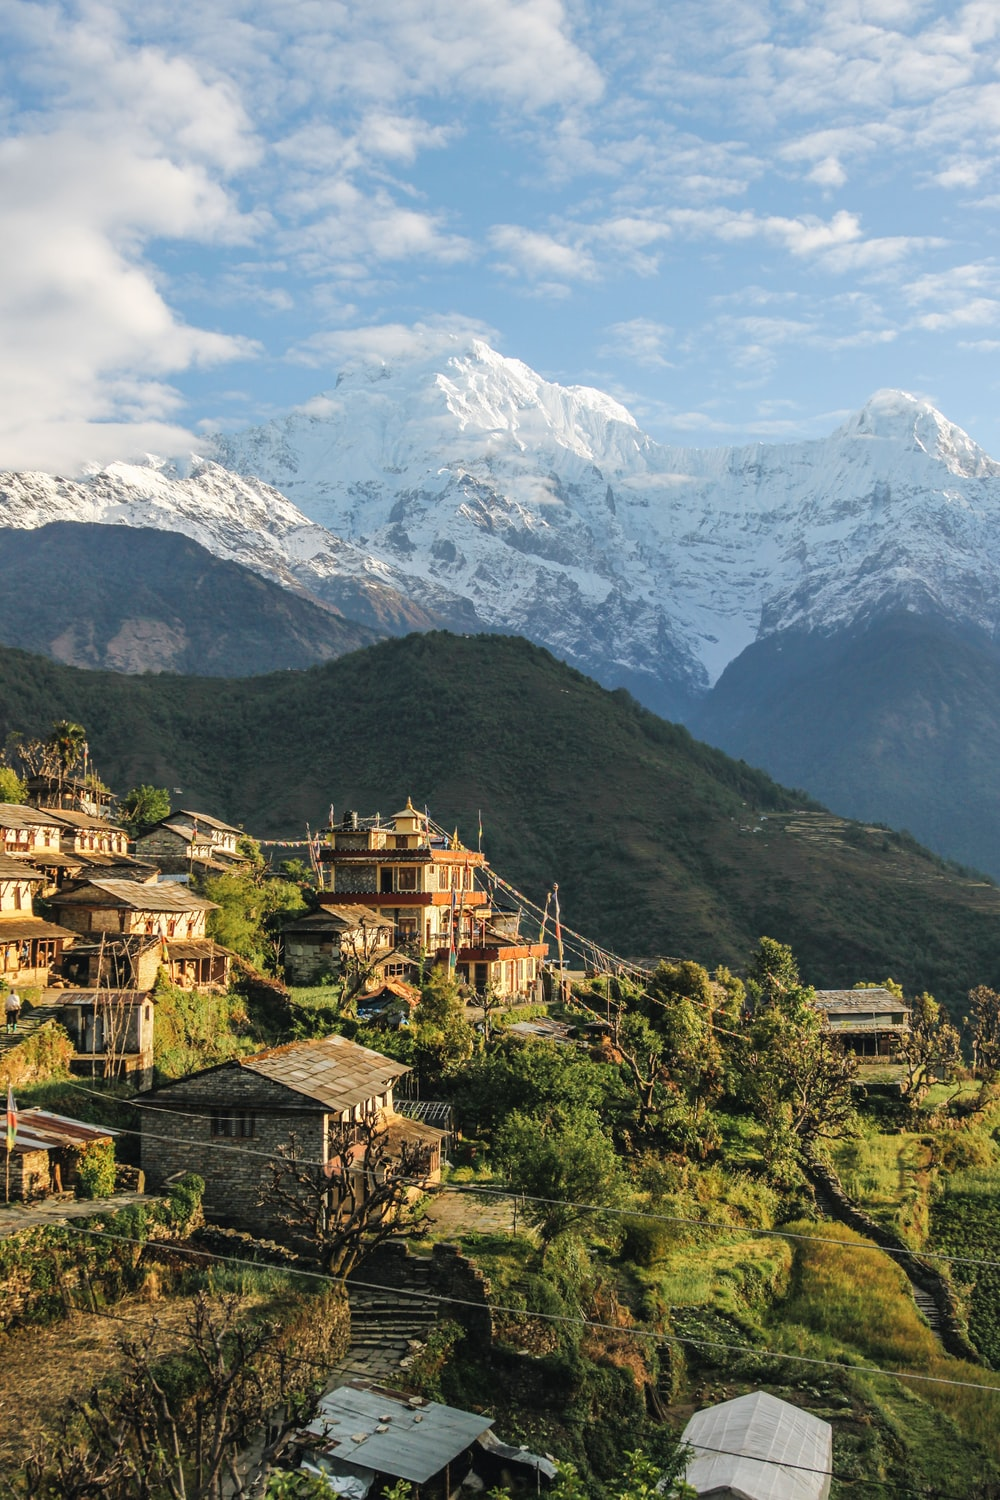 houses overlooking mountain range